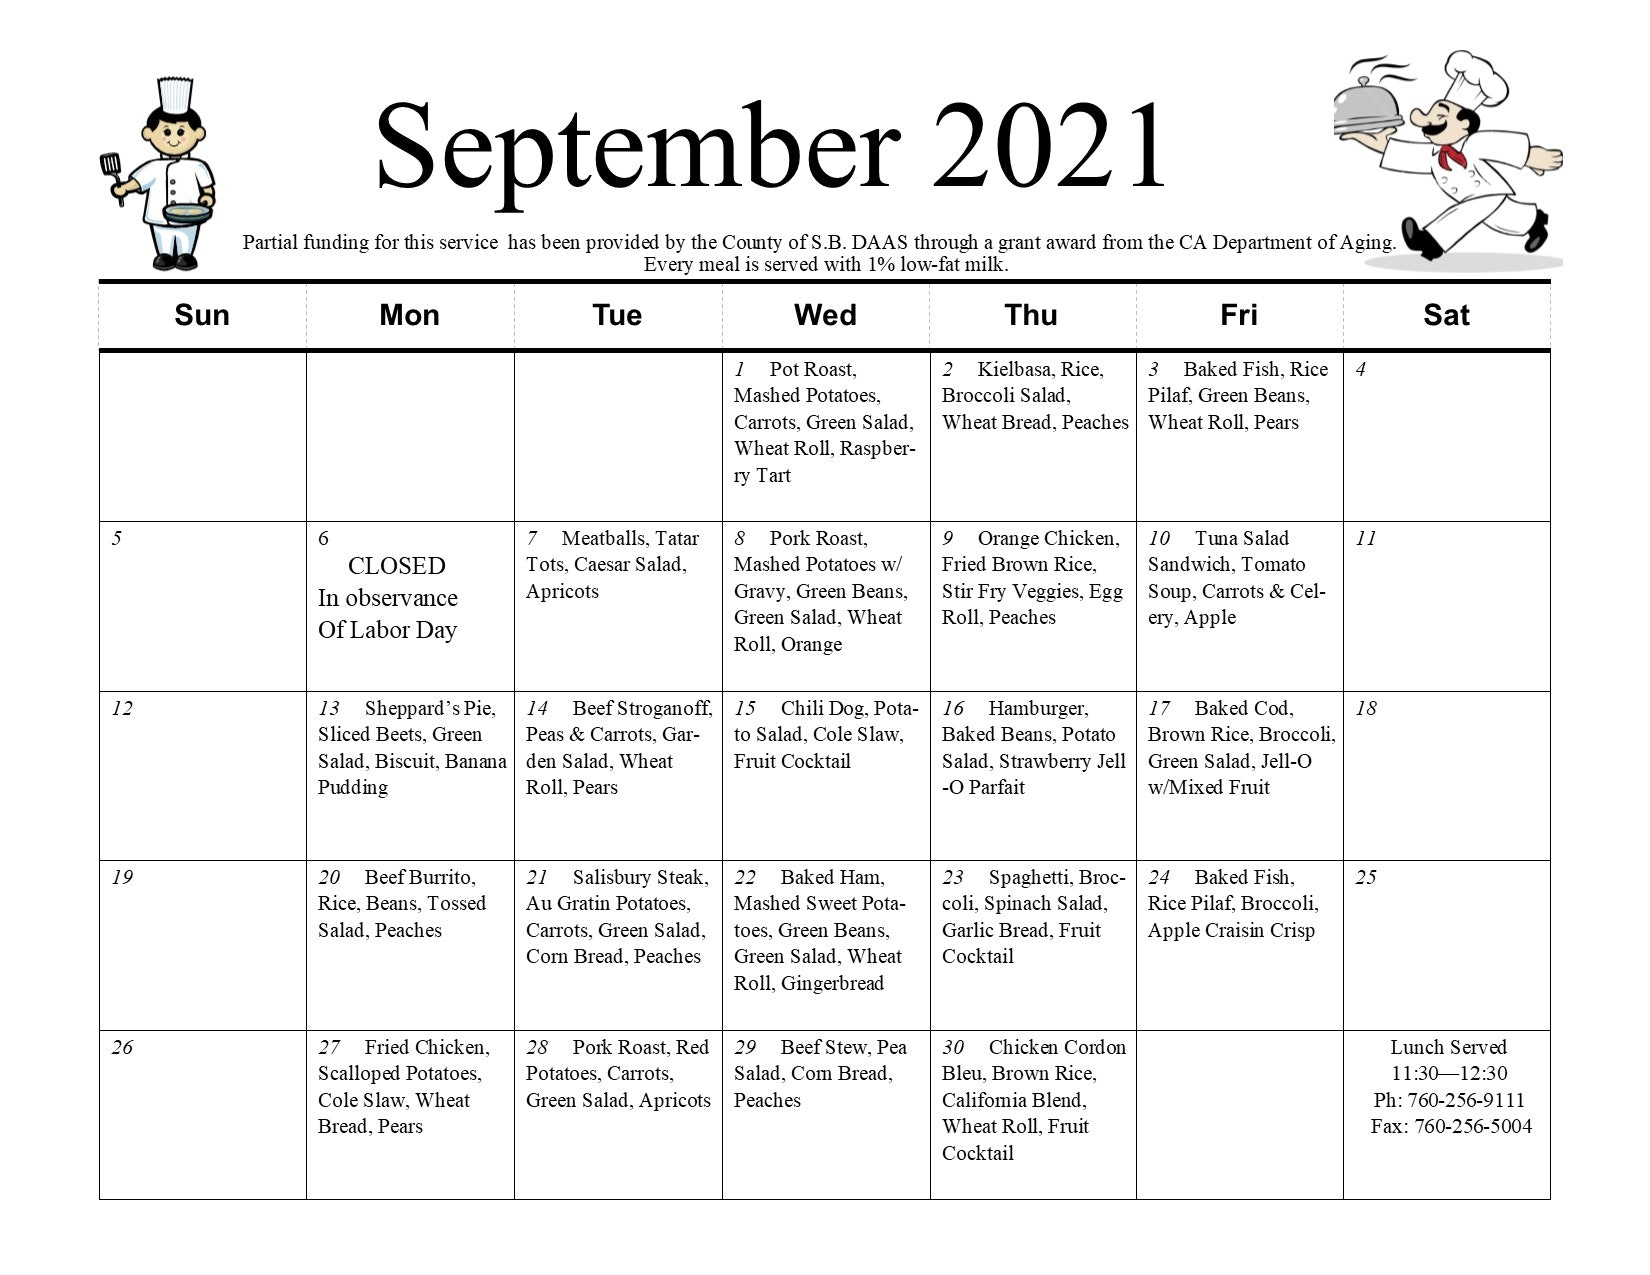 September 2021 Meals on Wheels Calendar. Partial funding for this service has been provided by the county of S.B. DAAS through grant award from the CA Department of Aging. Every meal is served with 1% low-fat milk. Wednesday, September 1; Pot roast, mashed potatoes, carrots, green salad, wheat roll, raspberry tart. Thursday, September 2nd; kielbasa, rice, broccoli salad, wheat bread, peaches. Friday, September 3rd; baked fish, rice pilaf, green beans, wheat roll, pears. Monday, September 6th; closed in observance of Labor Day. Tuesday, September 7th; meatballs, tater tots, Caesar salad, apricots. Wednesday, September 8th; pork roast, mashed potatoes with gravy, green beans, green salad, wheat roll, orange. Thursday, September 9th; orange chicken, fried brown rice, stir fry veggies, egg roll, peaches. Friday, September 10th; tuna salad sandwich, tomato soup, carrots and celery, apple. Monday, September 13th; Sheppard's pie, sliced beets, green salad, biscuit, banana pudding. Tuesday, September 14th; beef stroganoff, peas and carrots, garden salad, wheat roll, pears. Wednesday, September 15th; chili dog, potato salad, cole slaw, fruit cocktail. Thursday, September 17th; baked cod, brown rice, broccoli, green salad, jell-o mixed with fruit. Monday, September 20th; beef burrito, rice, beans, tossed salad, peaches. Tuesday, September 21st; salisbury steak, au gratin potaotes, carrots, green salad, corn bread, peaches. Wednesday, September 22nd; baked ham, mashed sweet potatoes, green beans, green salad, wheat roll, gingerbread. Thursday, September 23rd; spaghetti, broccoli, spinach salad, garlic bread, fruit cocktail. Friday, September 24th; fried chicken, scalloped potatoes, cole slaw, wheat bread, pears. Tuesday, September 28th; pork roast, red potatoes, carrots, green salad, apricots. Wednesday, September 28th; beef stew, pea salad, corn bread, peaches. Thursday, September 30th; chicken cordon bleu, brown rice, California blend, wheat roll, fruit cocktail. Lunch serve